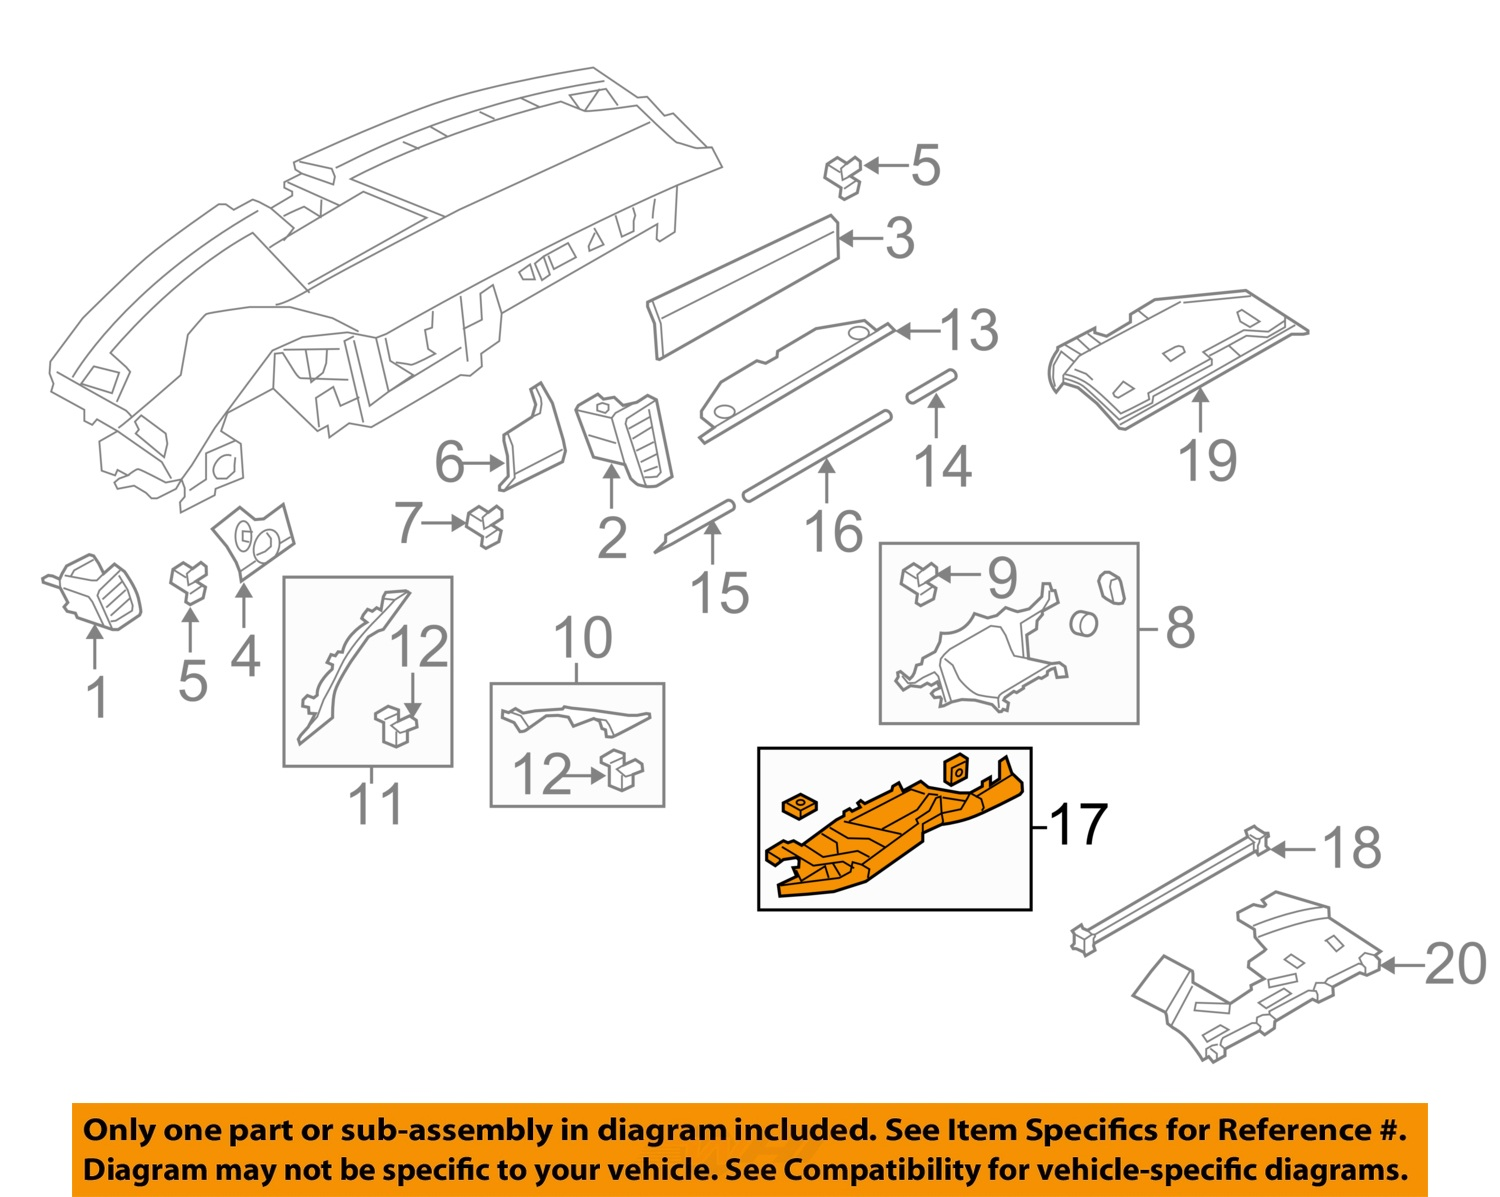 Audi A4 Car Diagram Http Wwwbentleypublisherscom Audi Repair